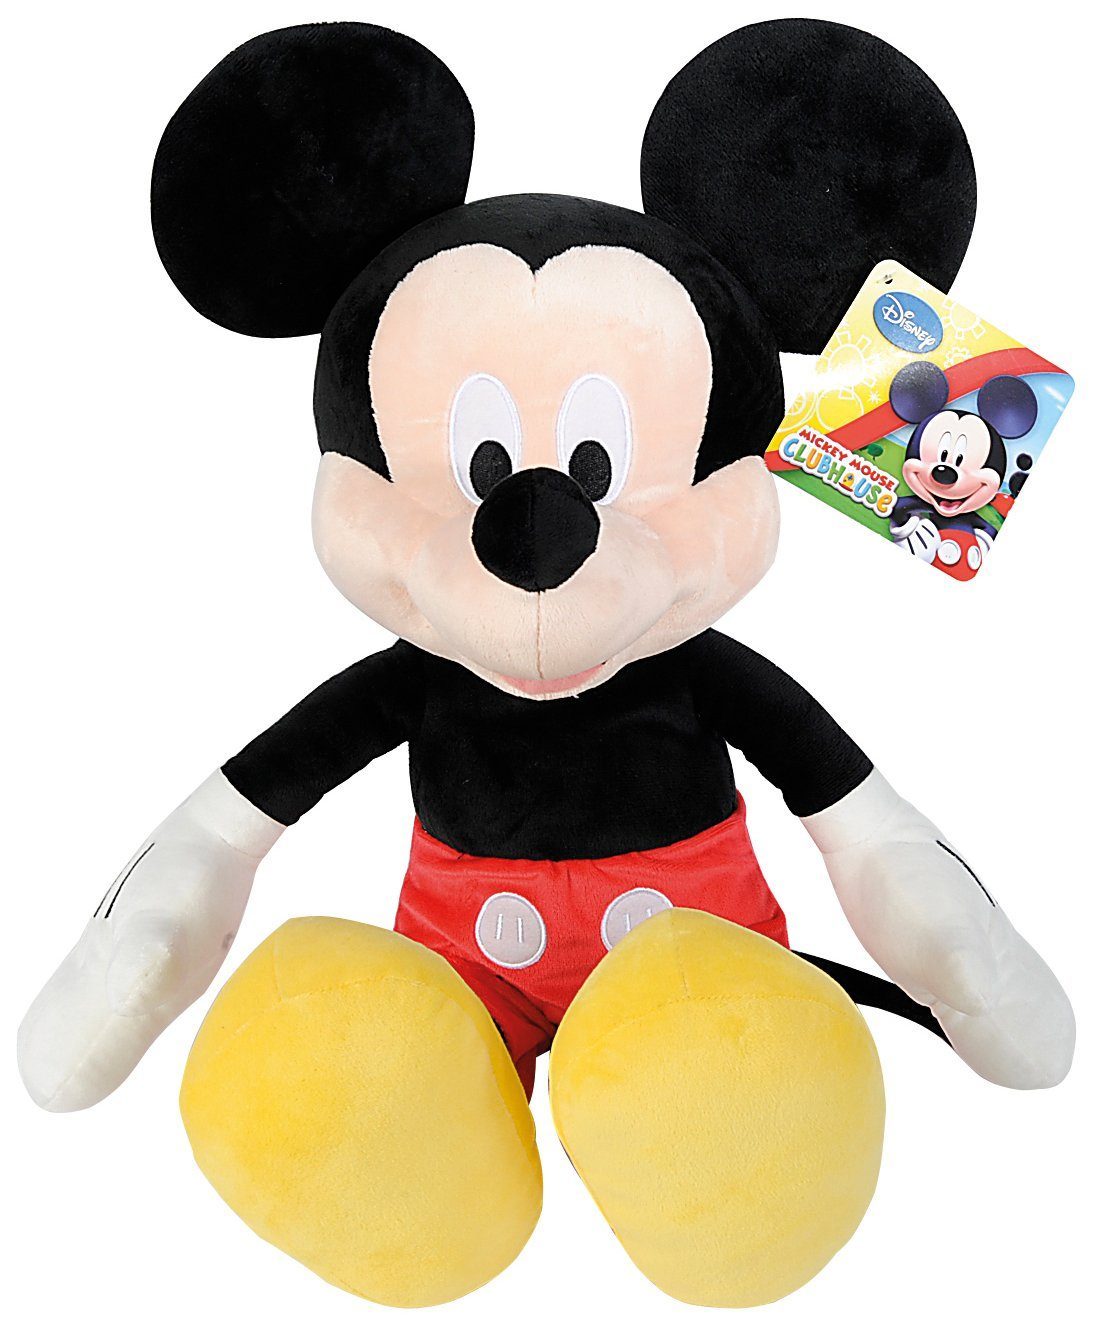 Simba Plüschtier, »Disney Mickey Mouse Clubhouse, Mickey Mouse ca. 61 cm«